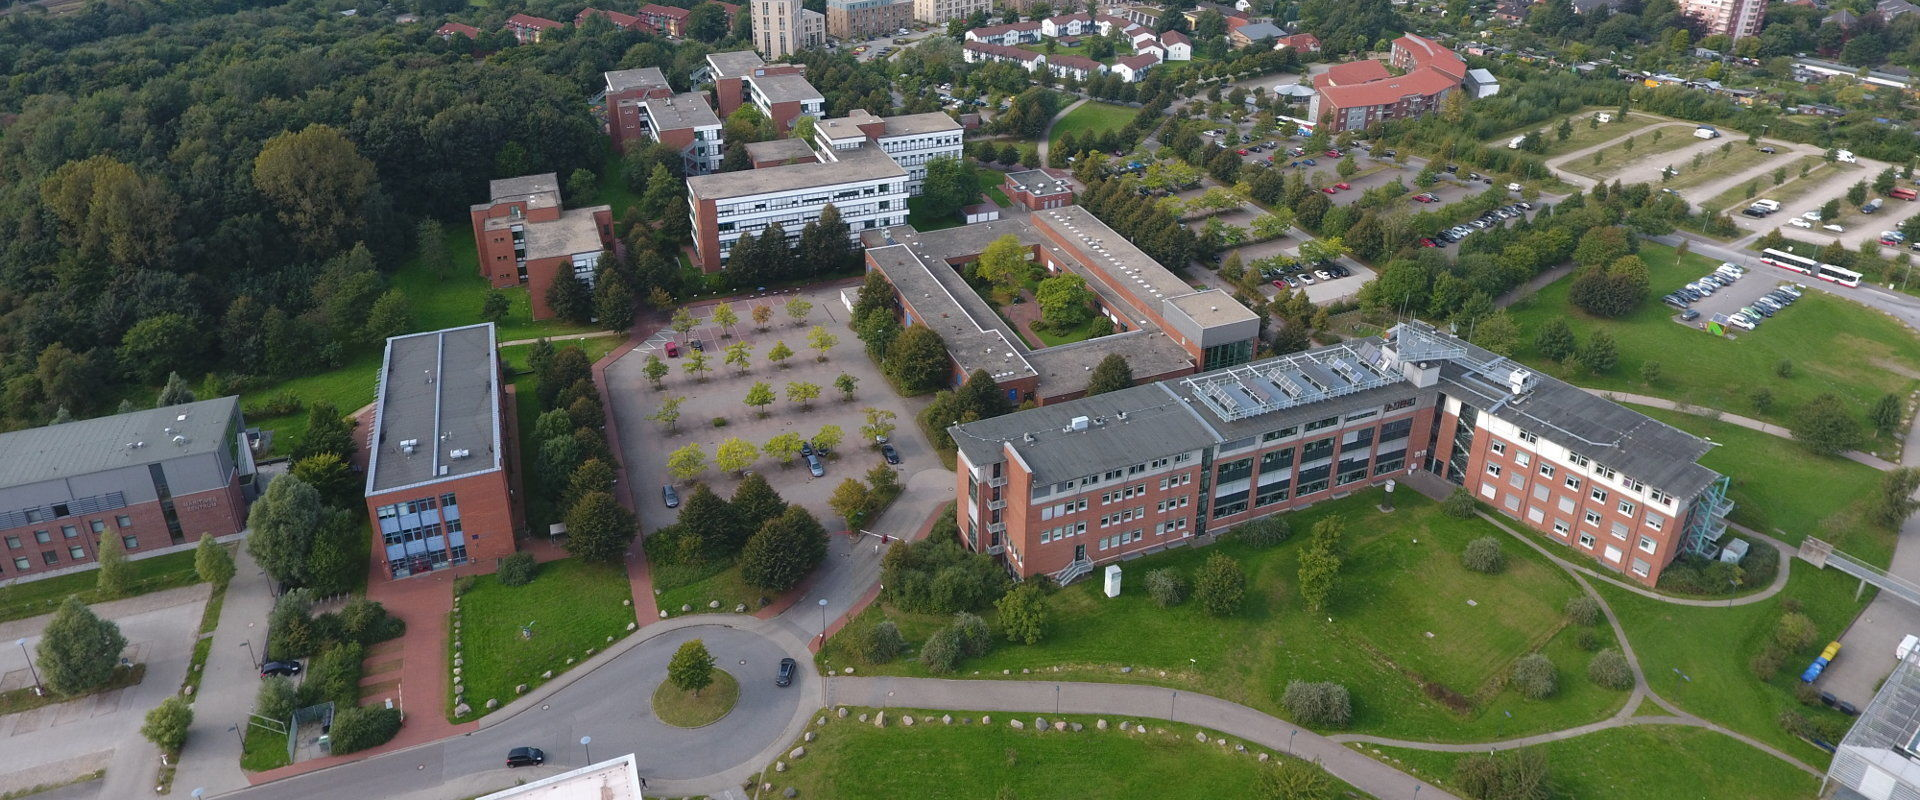 Flensburg University of Applied Sciences